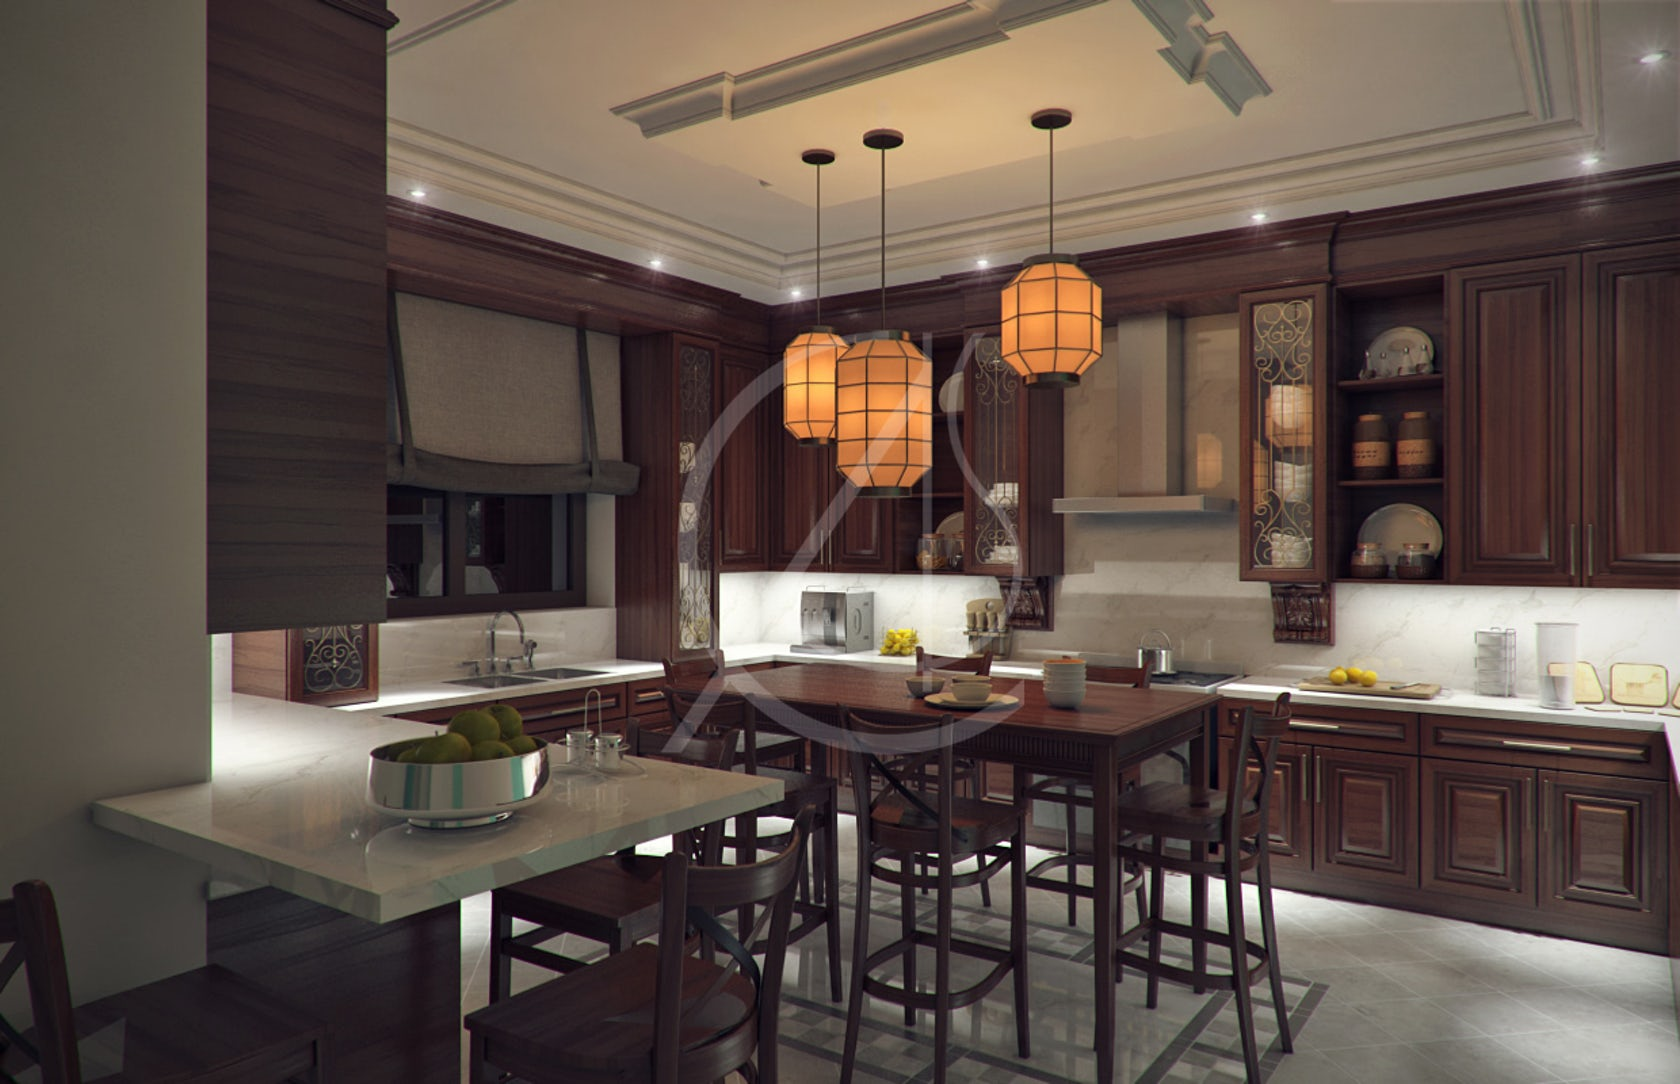 Traditional Interior Design By Ownby: Luxury Kerala House Traditional Interior Design